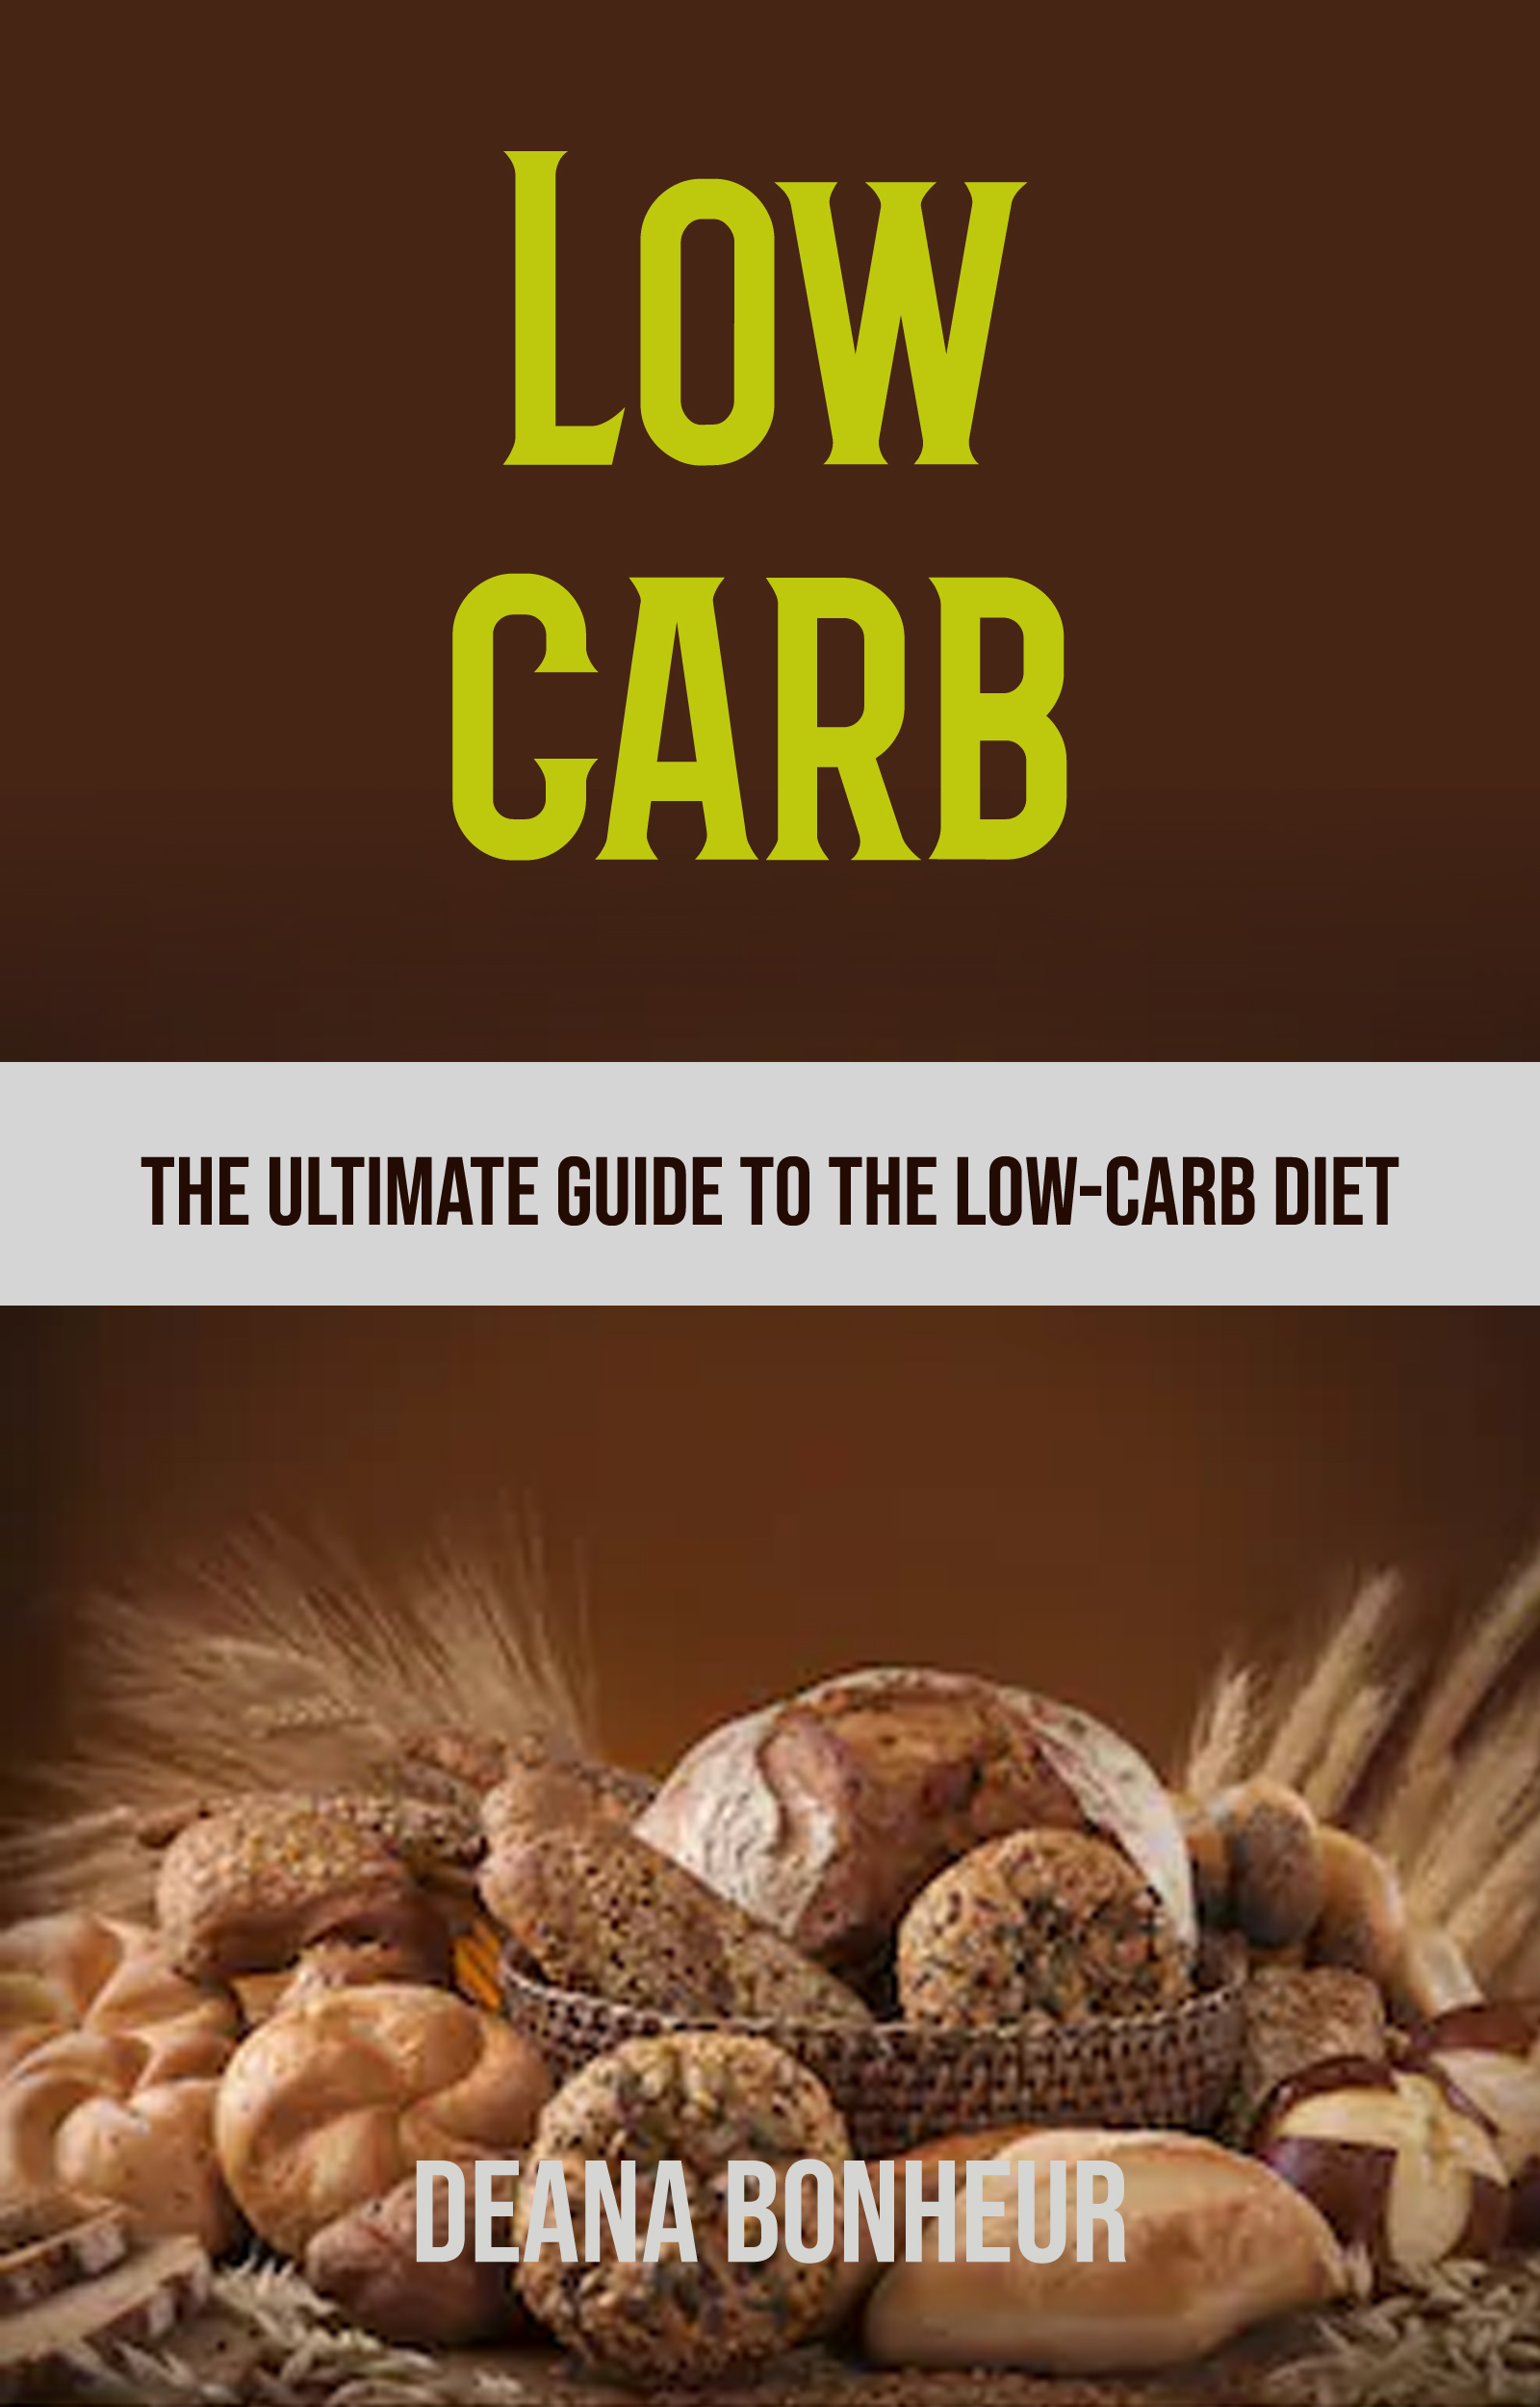 Low carb: the ultimate guide to the low-carb diet